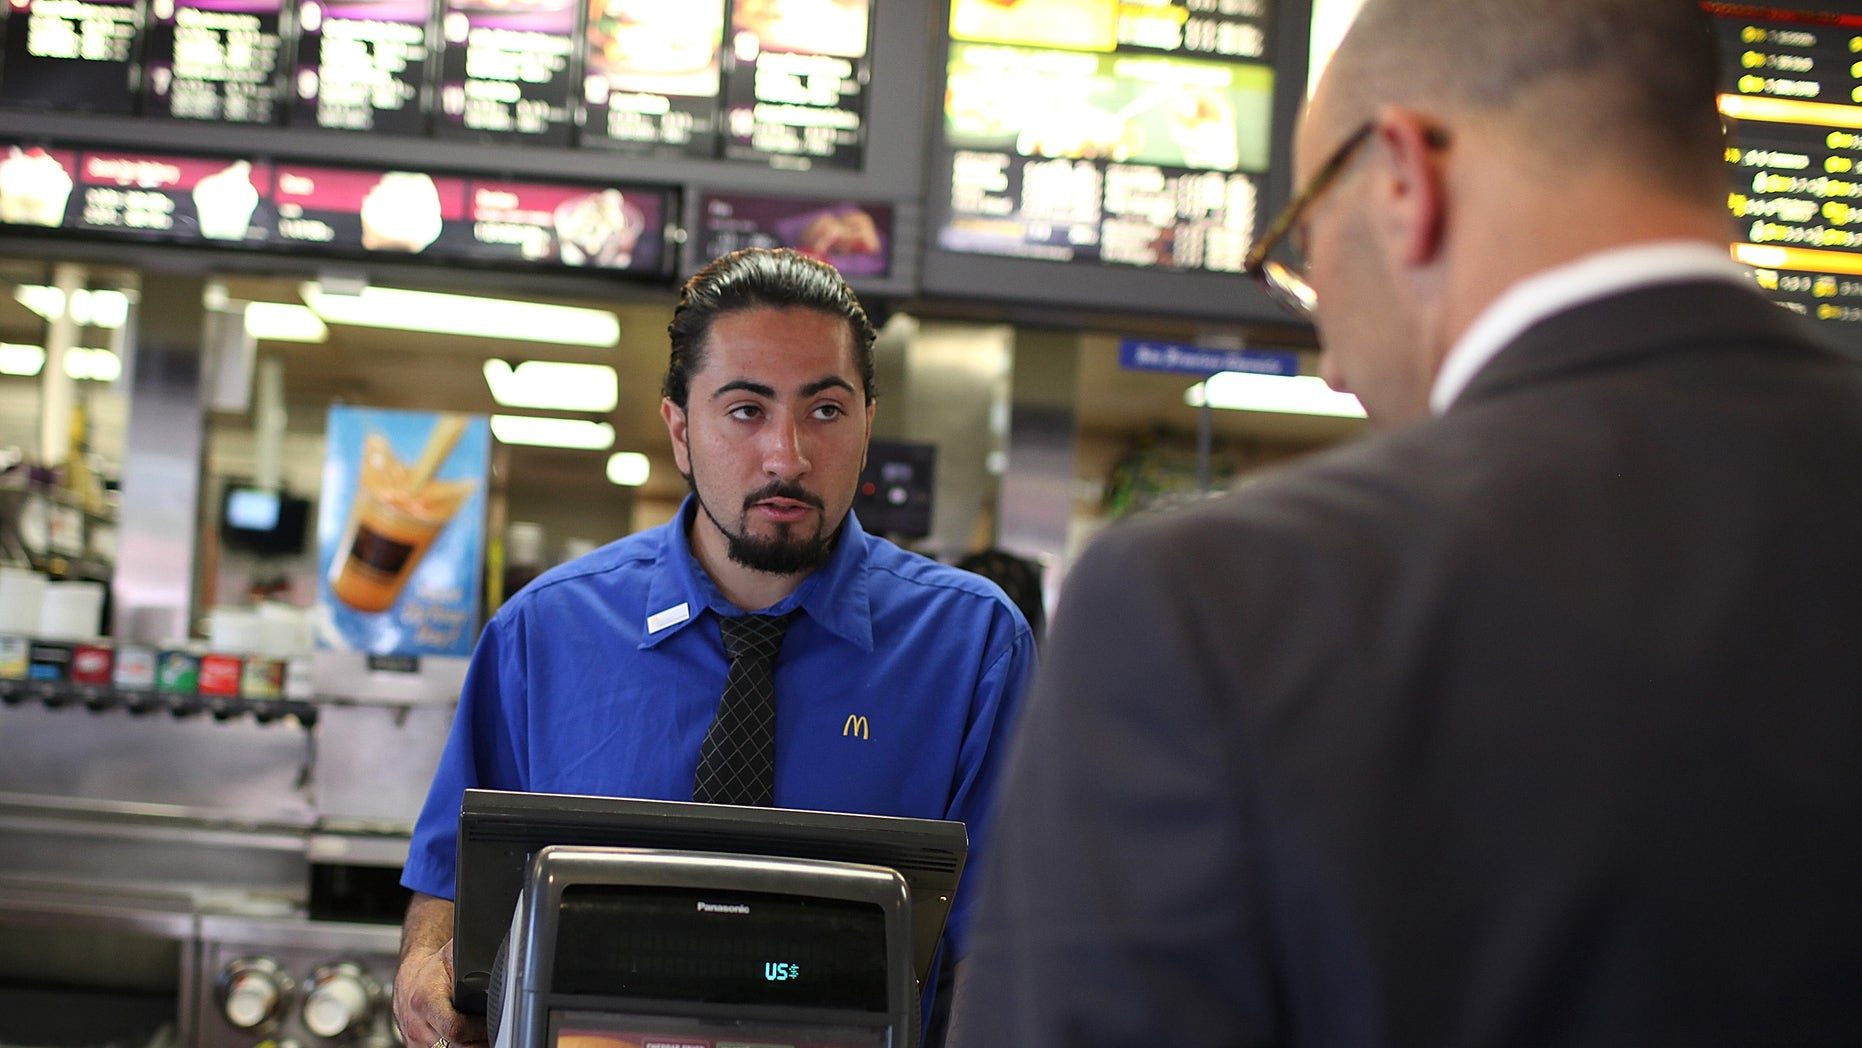 SAN FRANCISCO, CA - APRIL 19:  McDonald's employee Salvador Ibarra takes an order during a one-day hiring event at a McDonald's restaurant on April 19, 2011 in San Francisco, California.  Hundreds of job seekers filled out applications and were interviewed at a San Francisco McDonald's restaurant during a one-day nationwide event at the chain as they look to fill 50,000 positions at stores nationwide.  (Photo by Justin Sullivan/Getty Images)